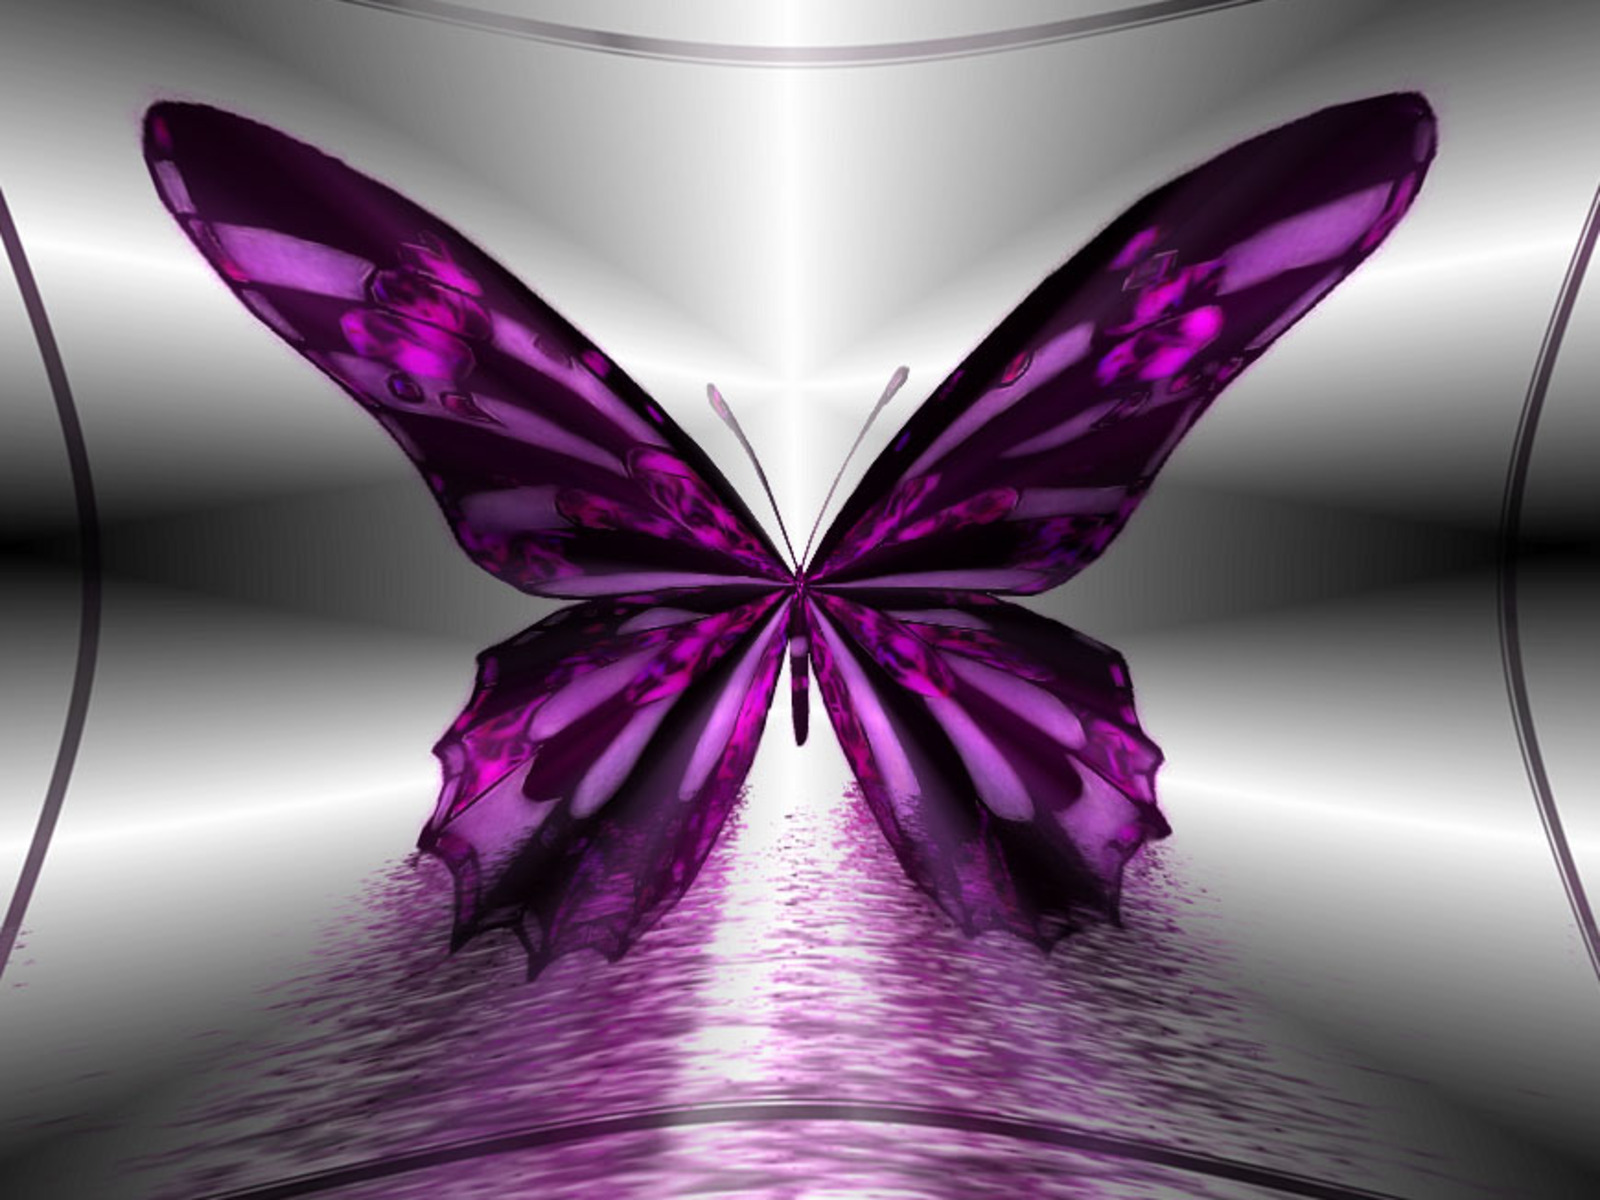 Wallpapers   HD Desktop Wallpapers Online Butterfly 1600x1200